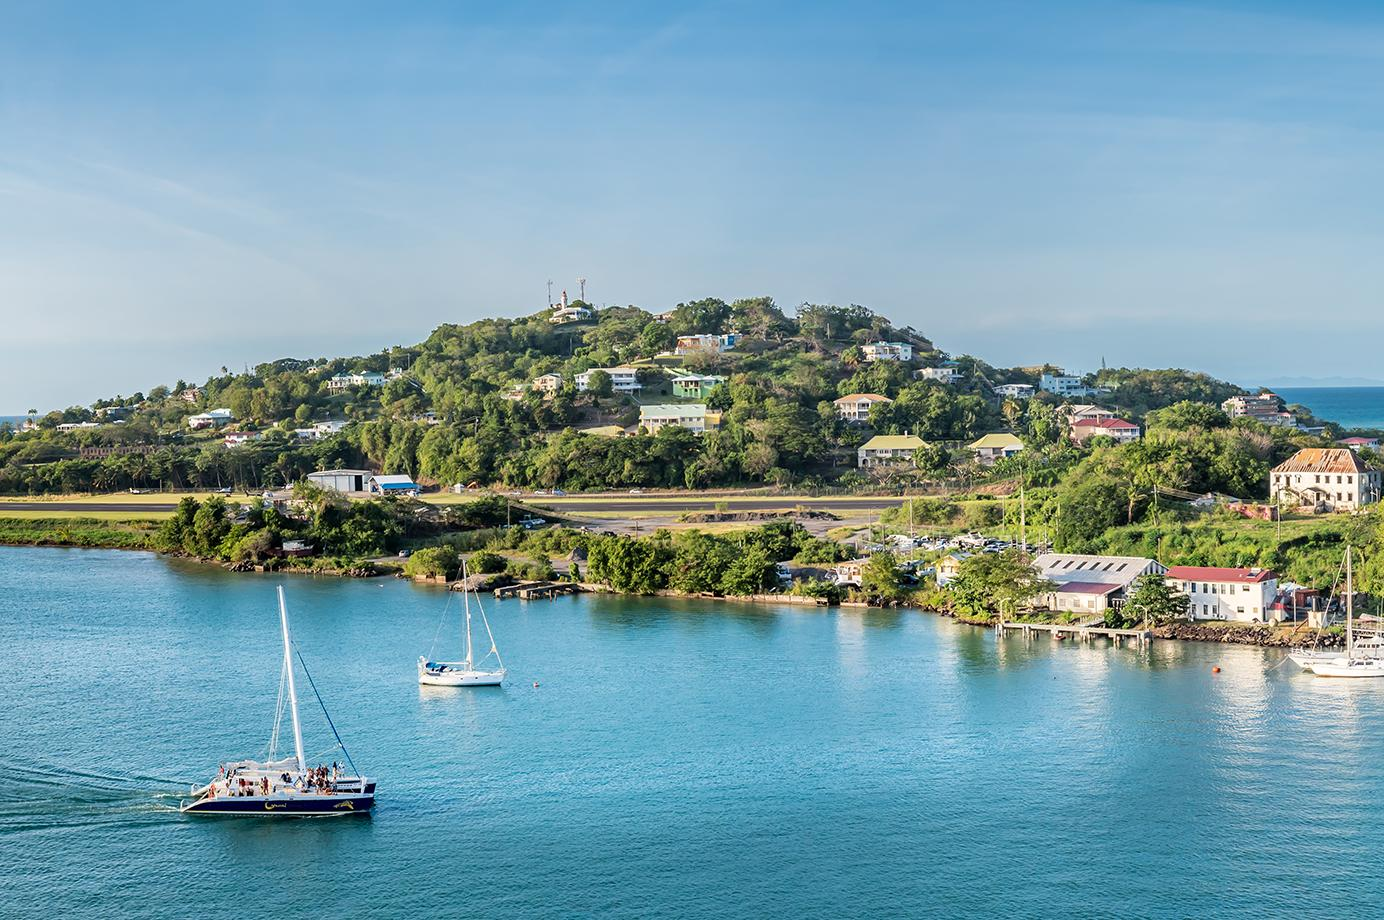 Views of Castries Harbor in St. Lucia